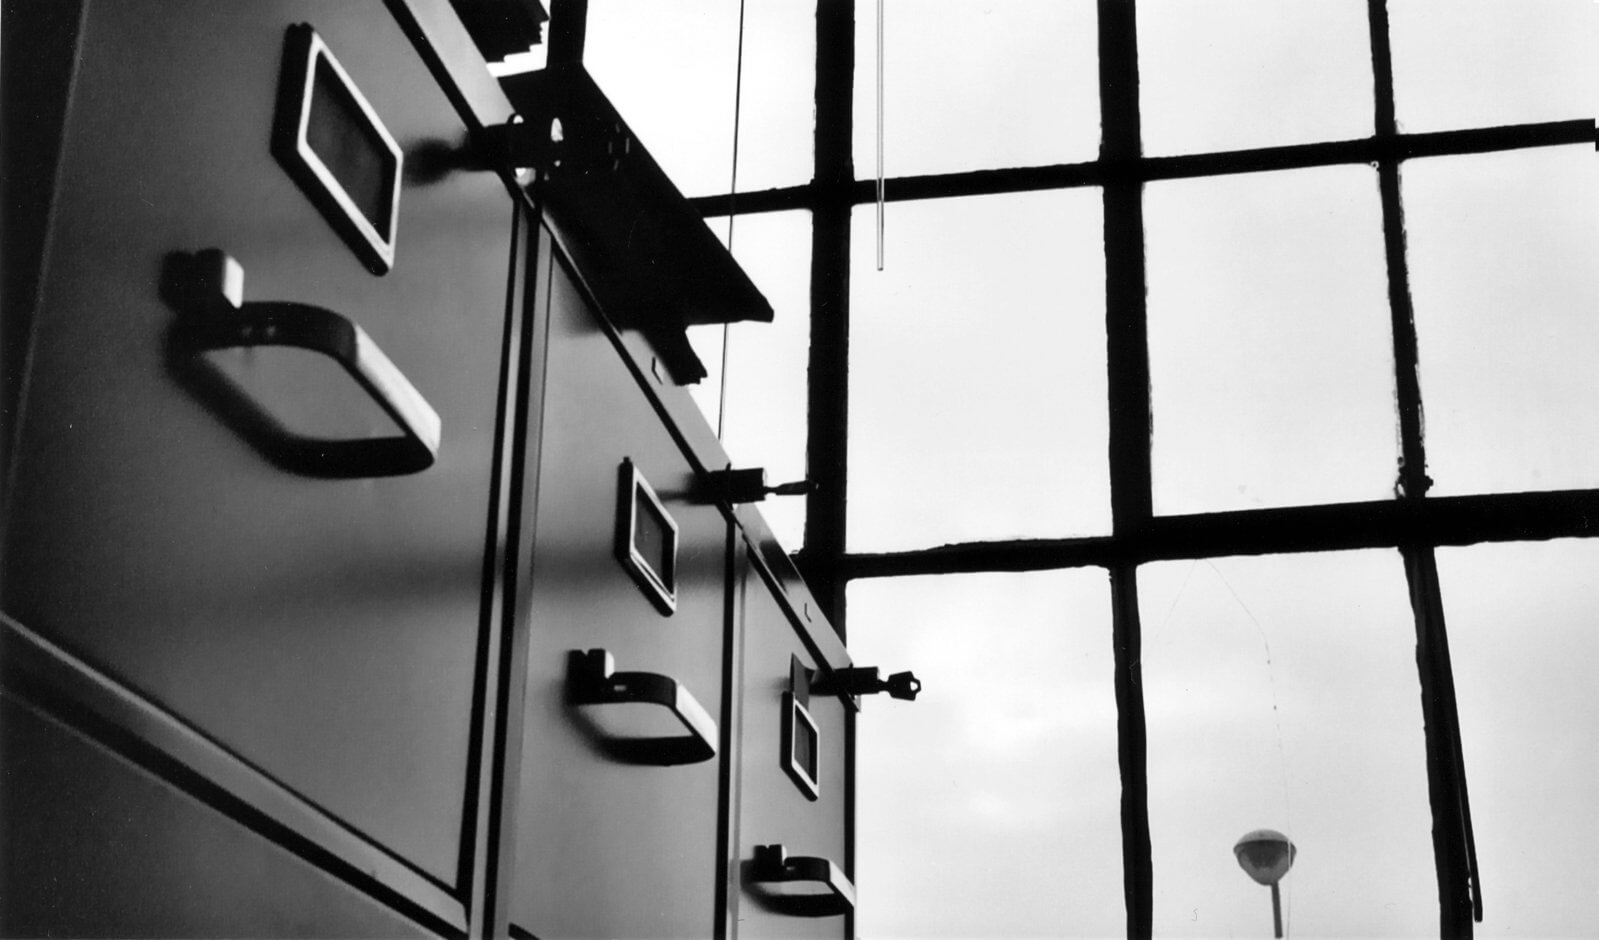 A row of file cabinets set up indoors next to large windows.